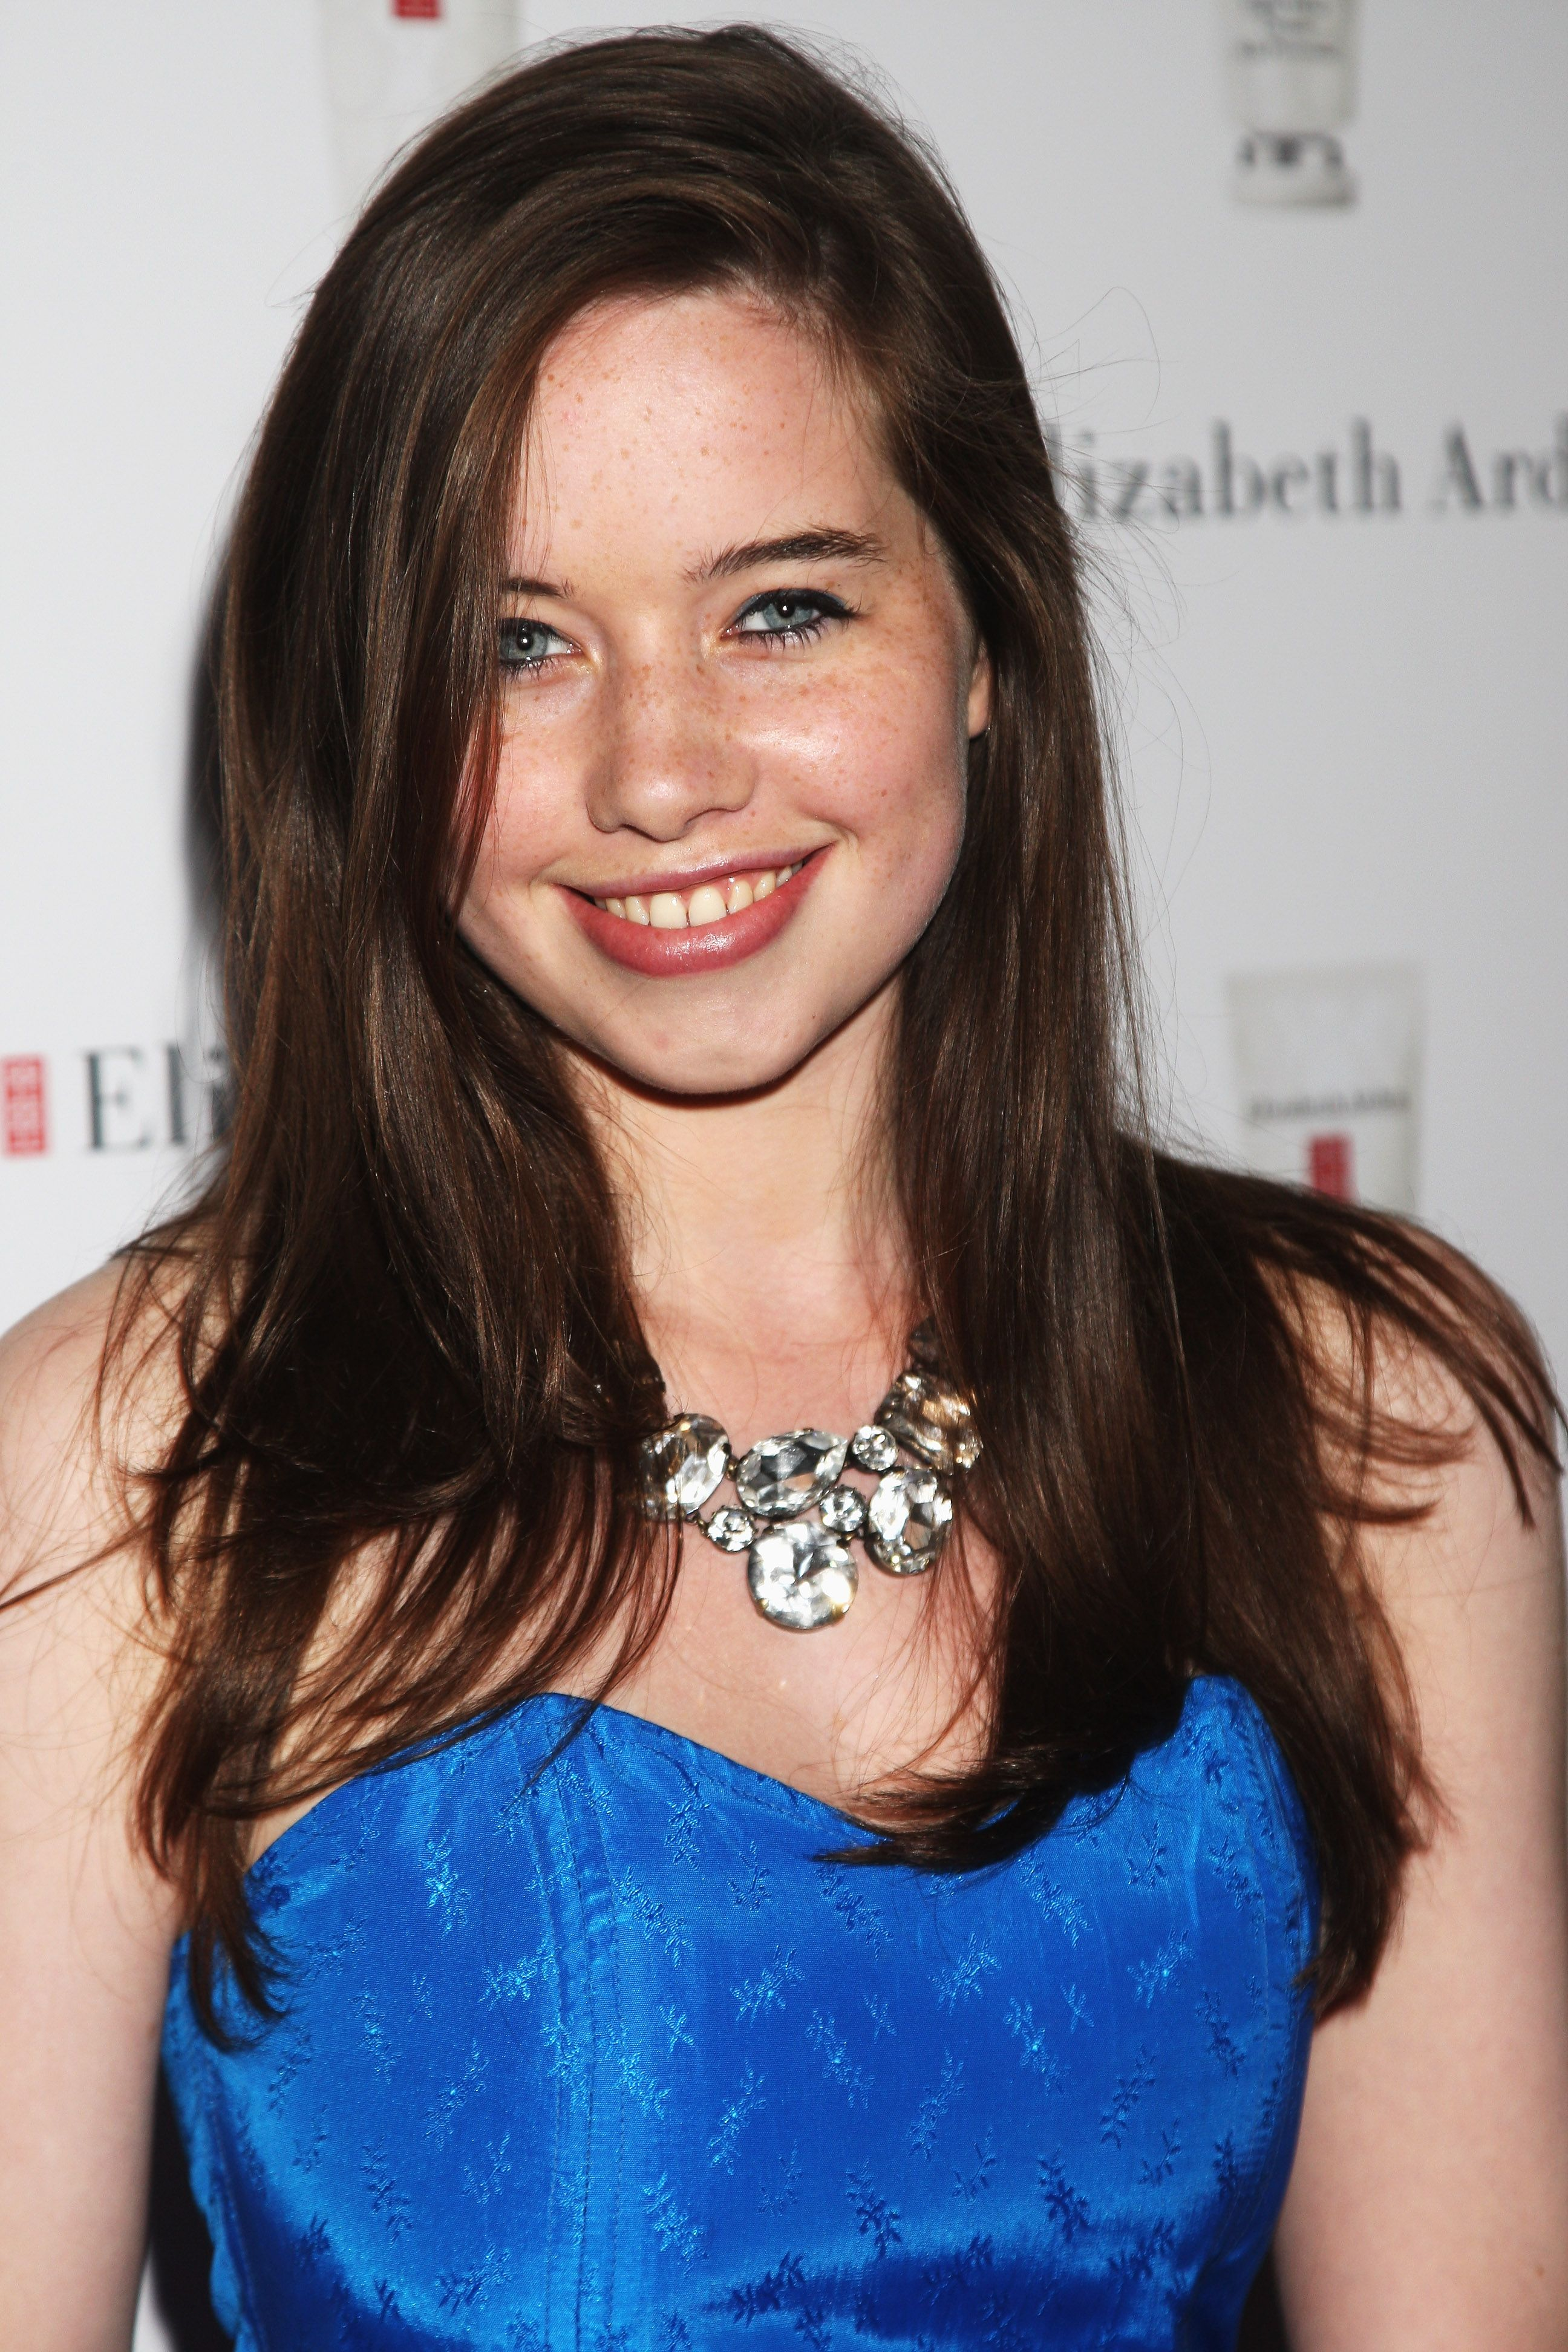 Watch Anna Popplewell (born 1988) video